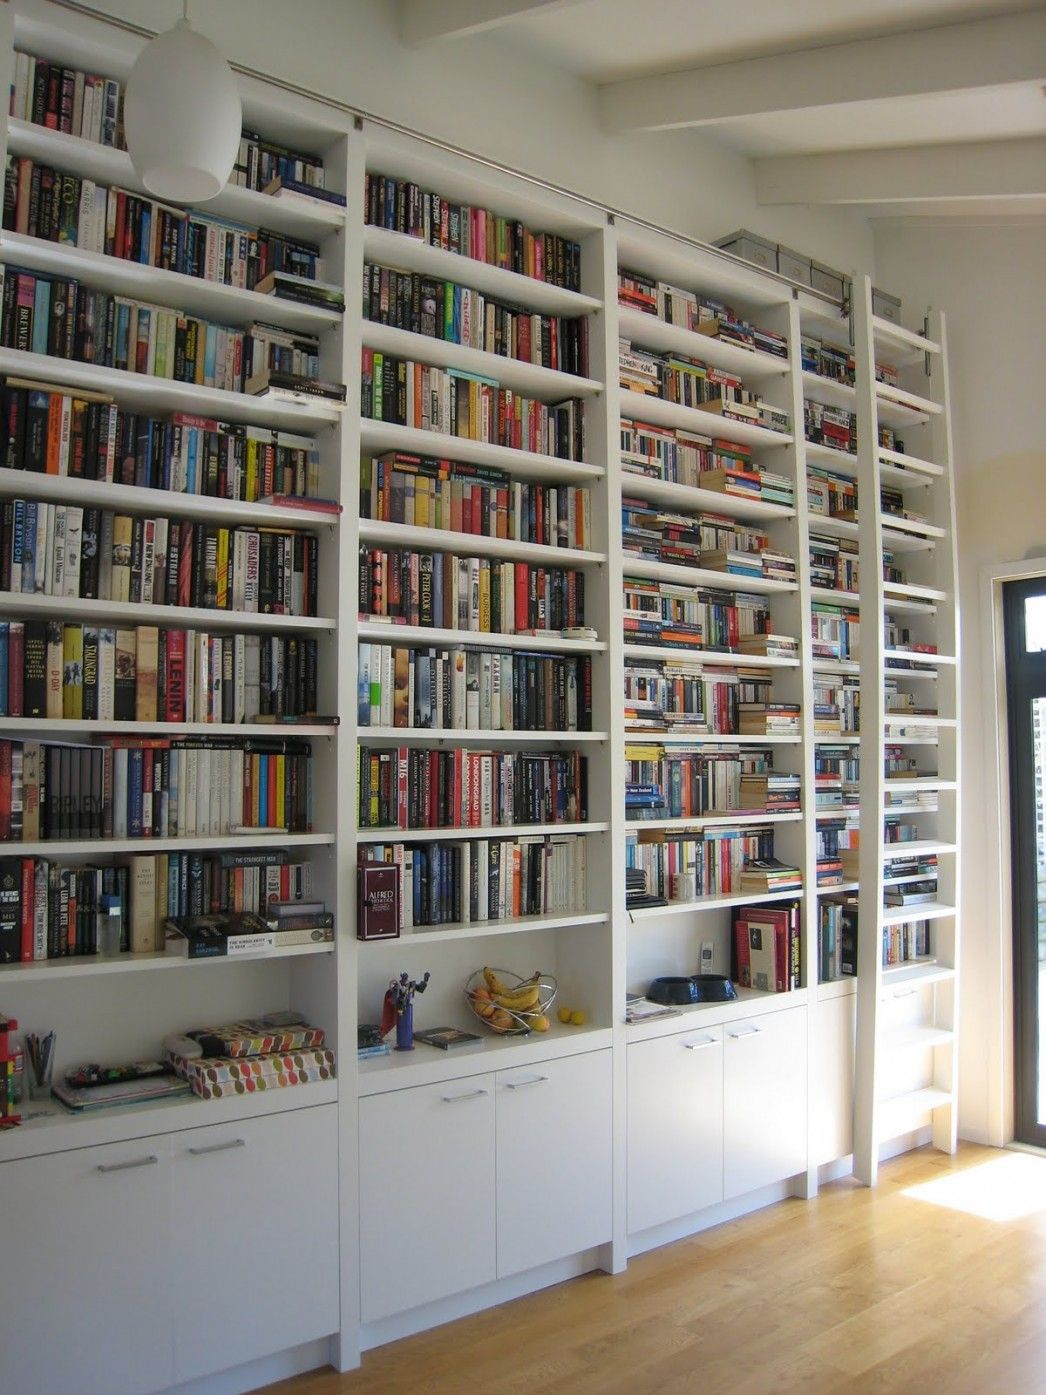 Wall Book Racks Big Library Ladder Ikea Book Cases Plan Ideas Narrow